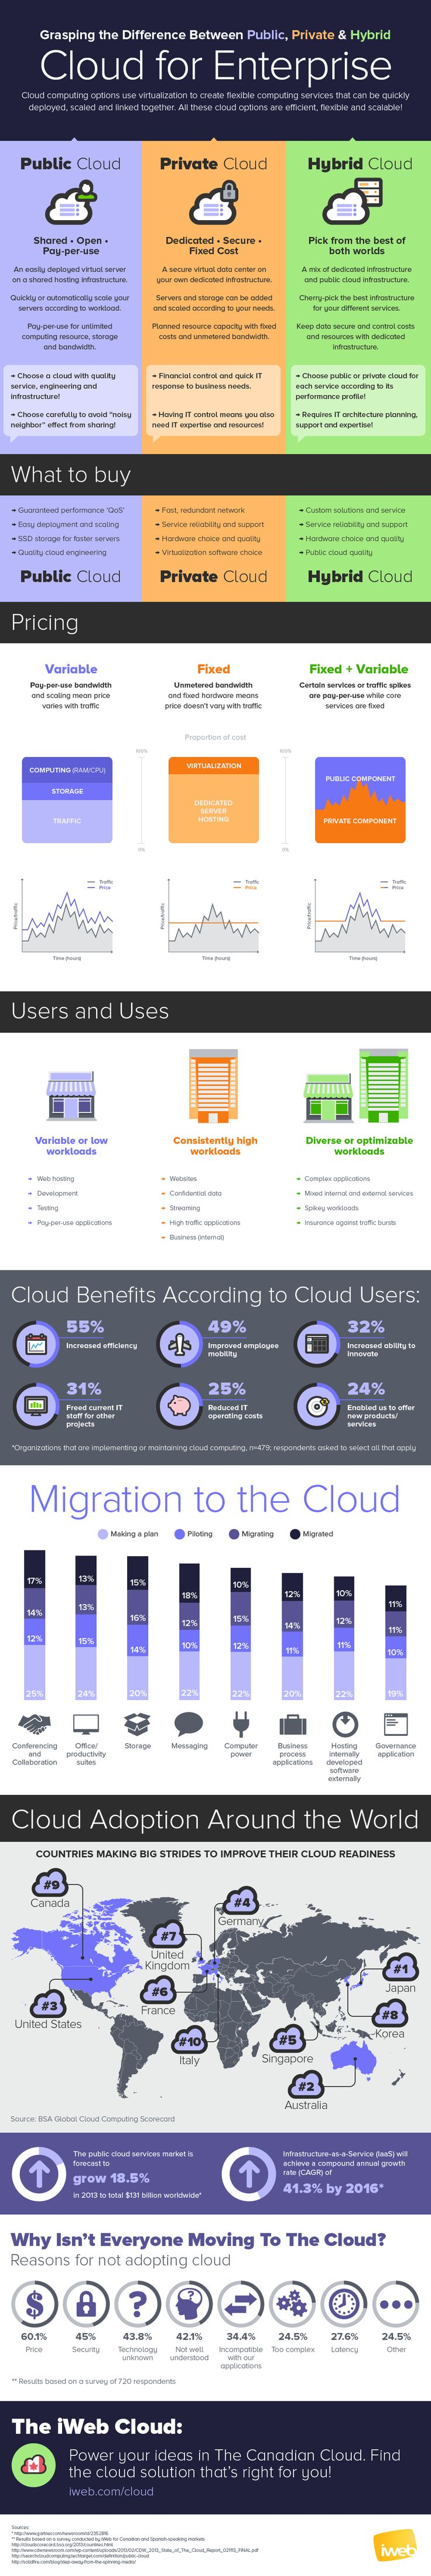 Cloud Infographic: Cloud Public, Private & Hybrid Differences... | The Cloud Network - Cloud Computing News